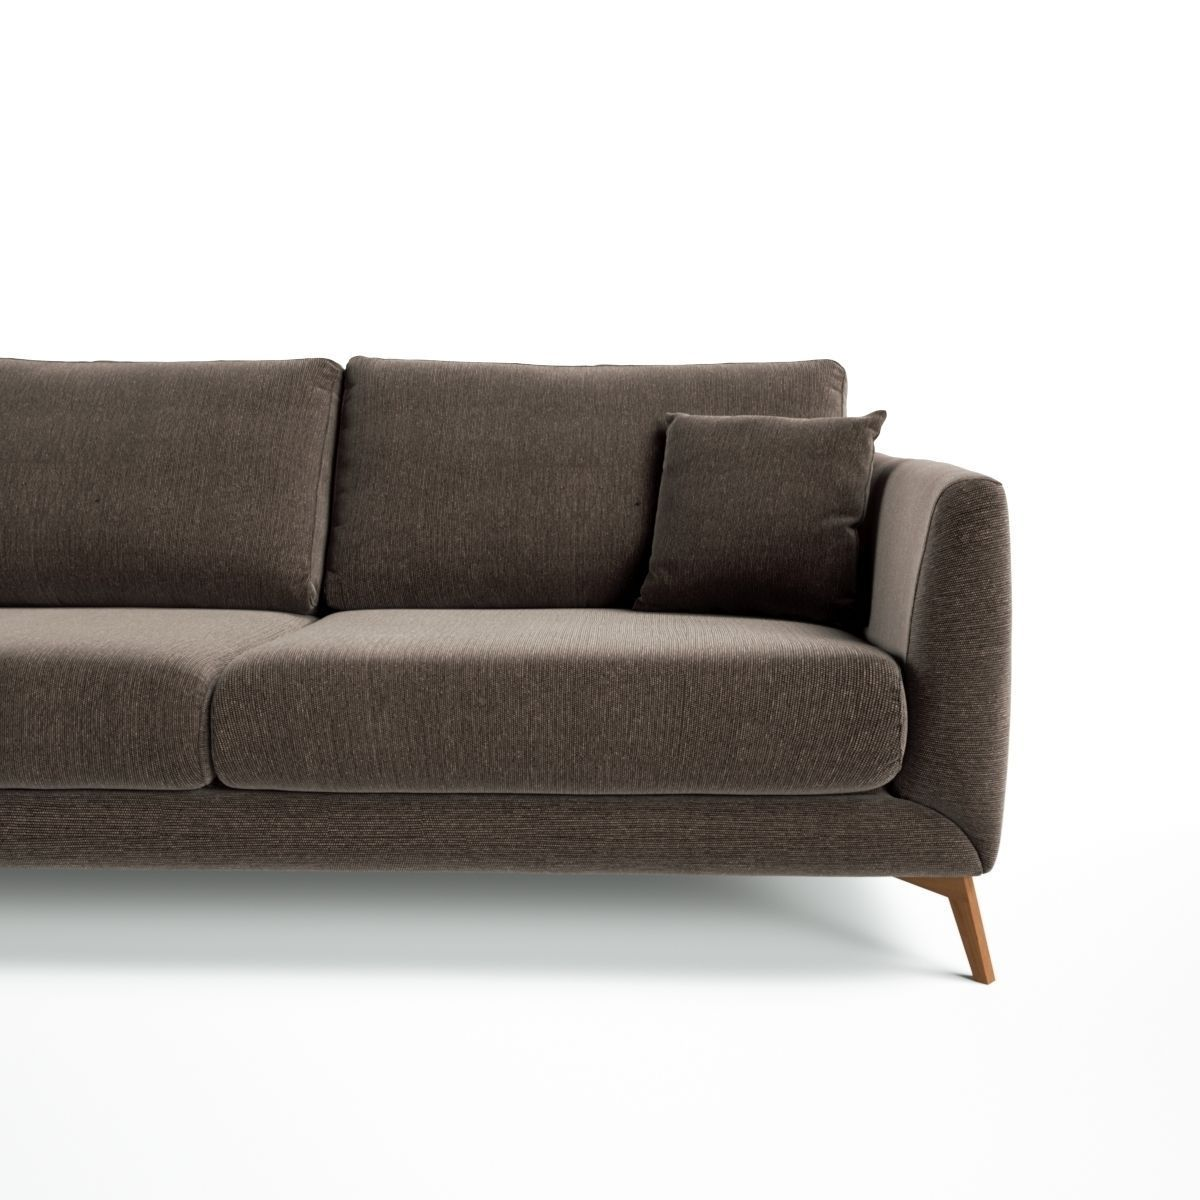 Boconcept fargo sofa 3d model max for Divan furniture